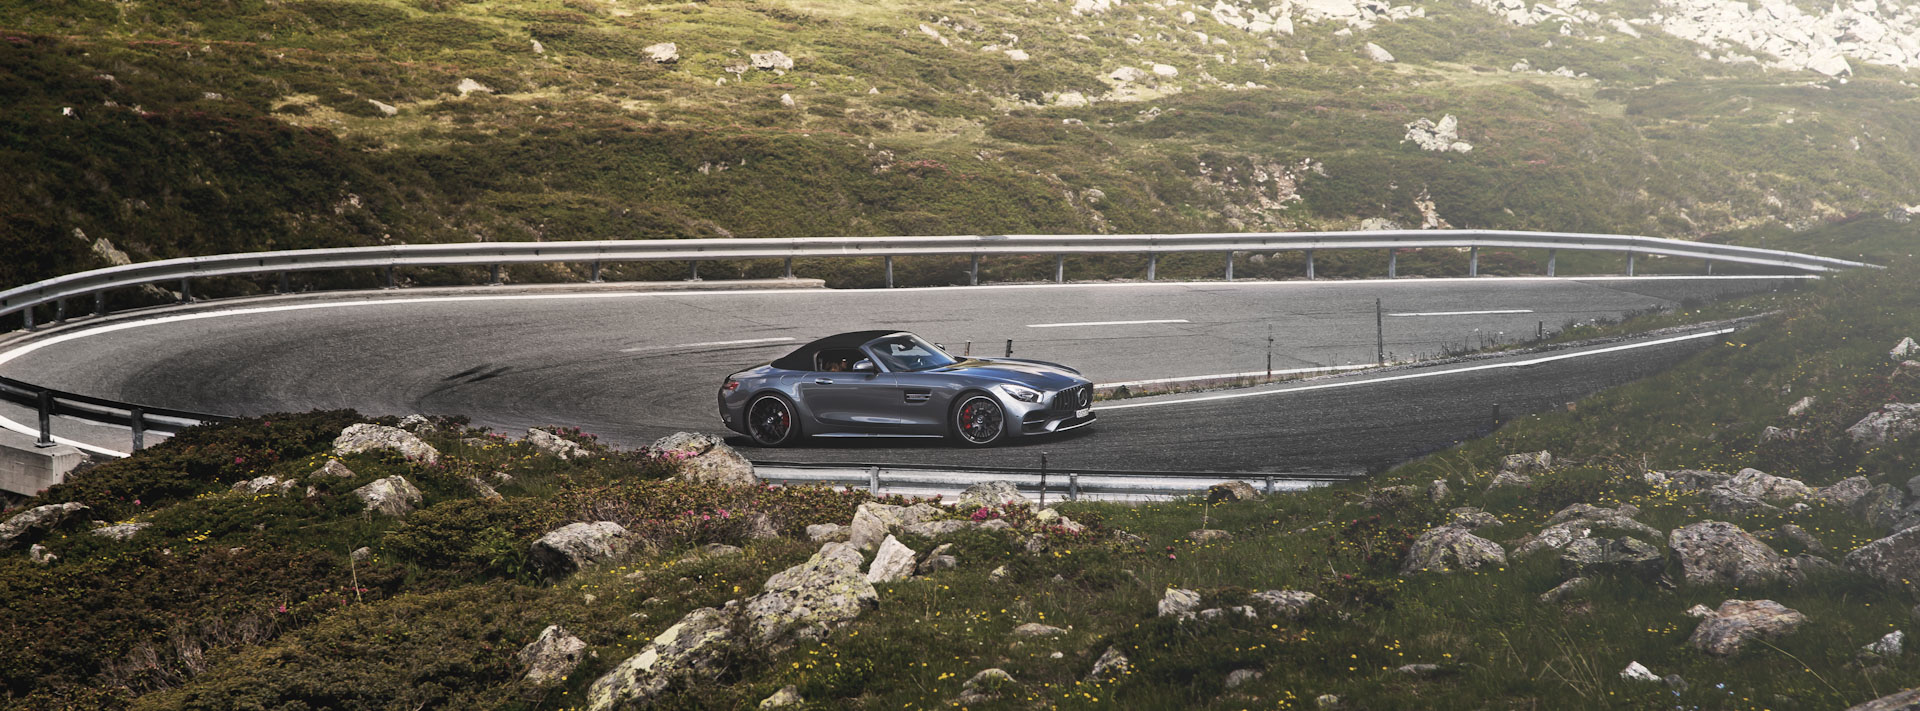 Supercar Experiences with AMG GT Roadster  in Alps